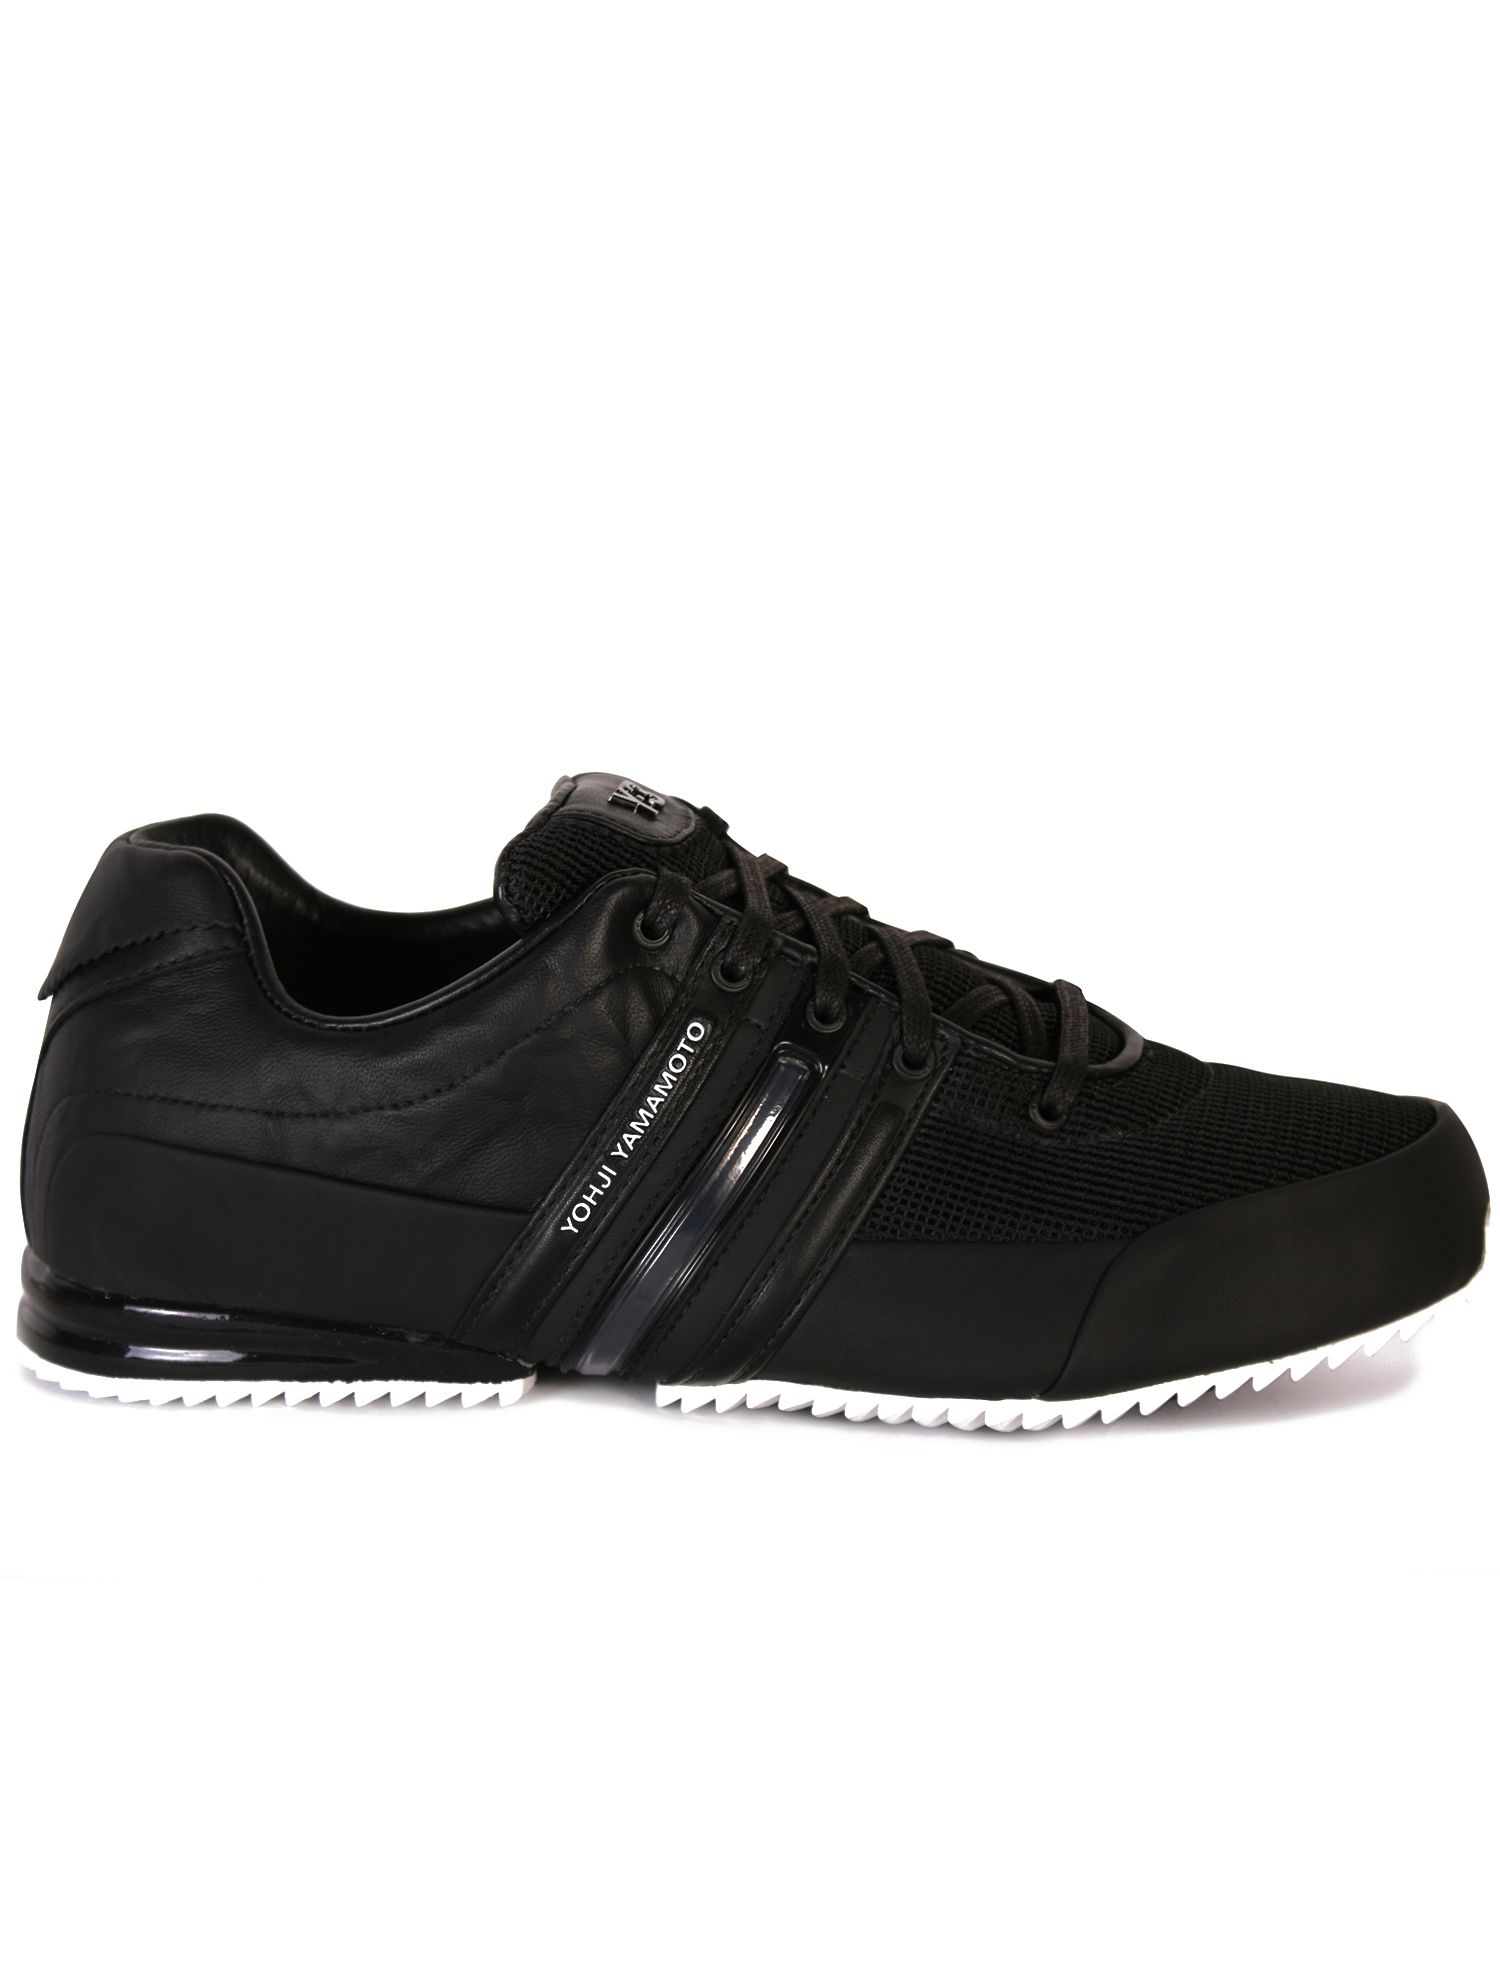 77e662f01ba92b Y3 Black Sprint Trainers - Black sprint trainers from the Y3 Yohji Yamamoto  collection feature a